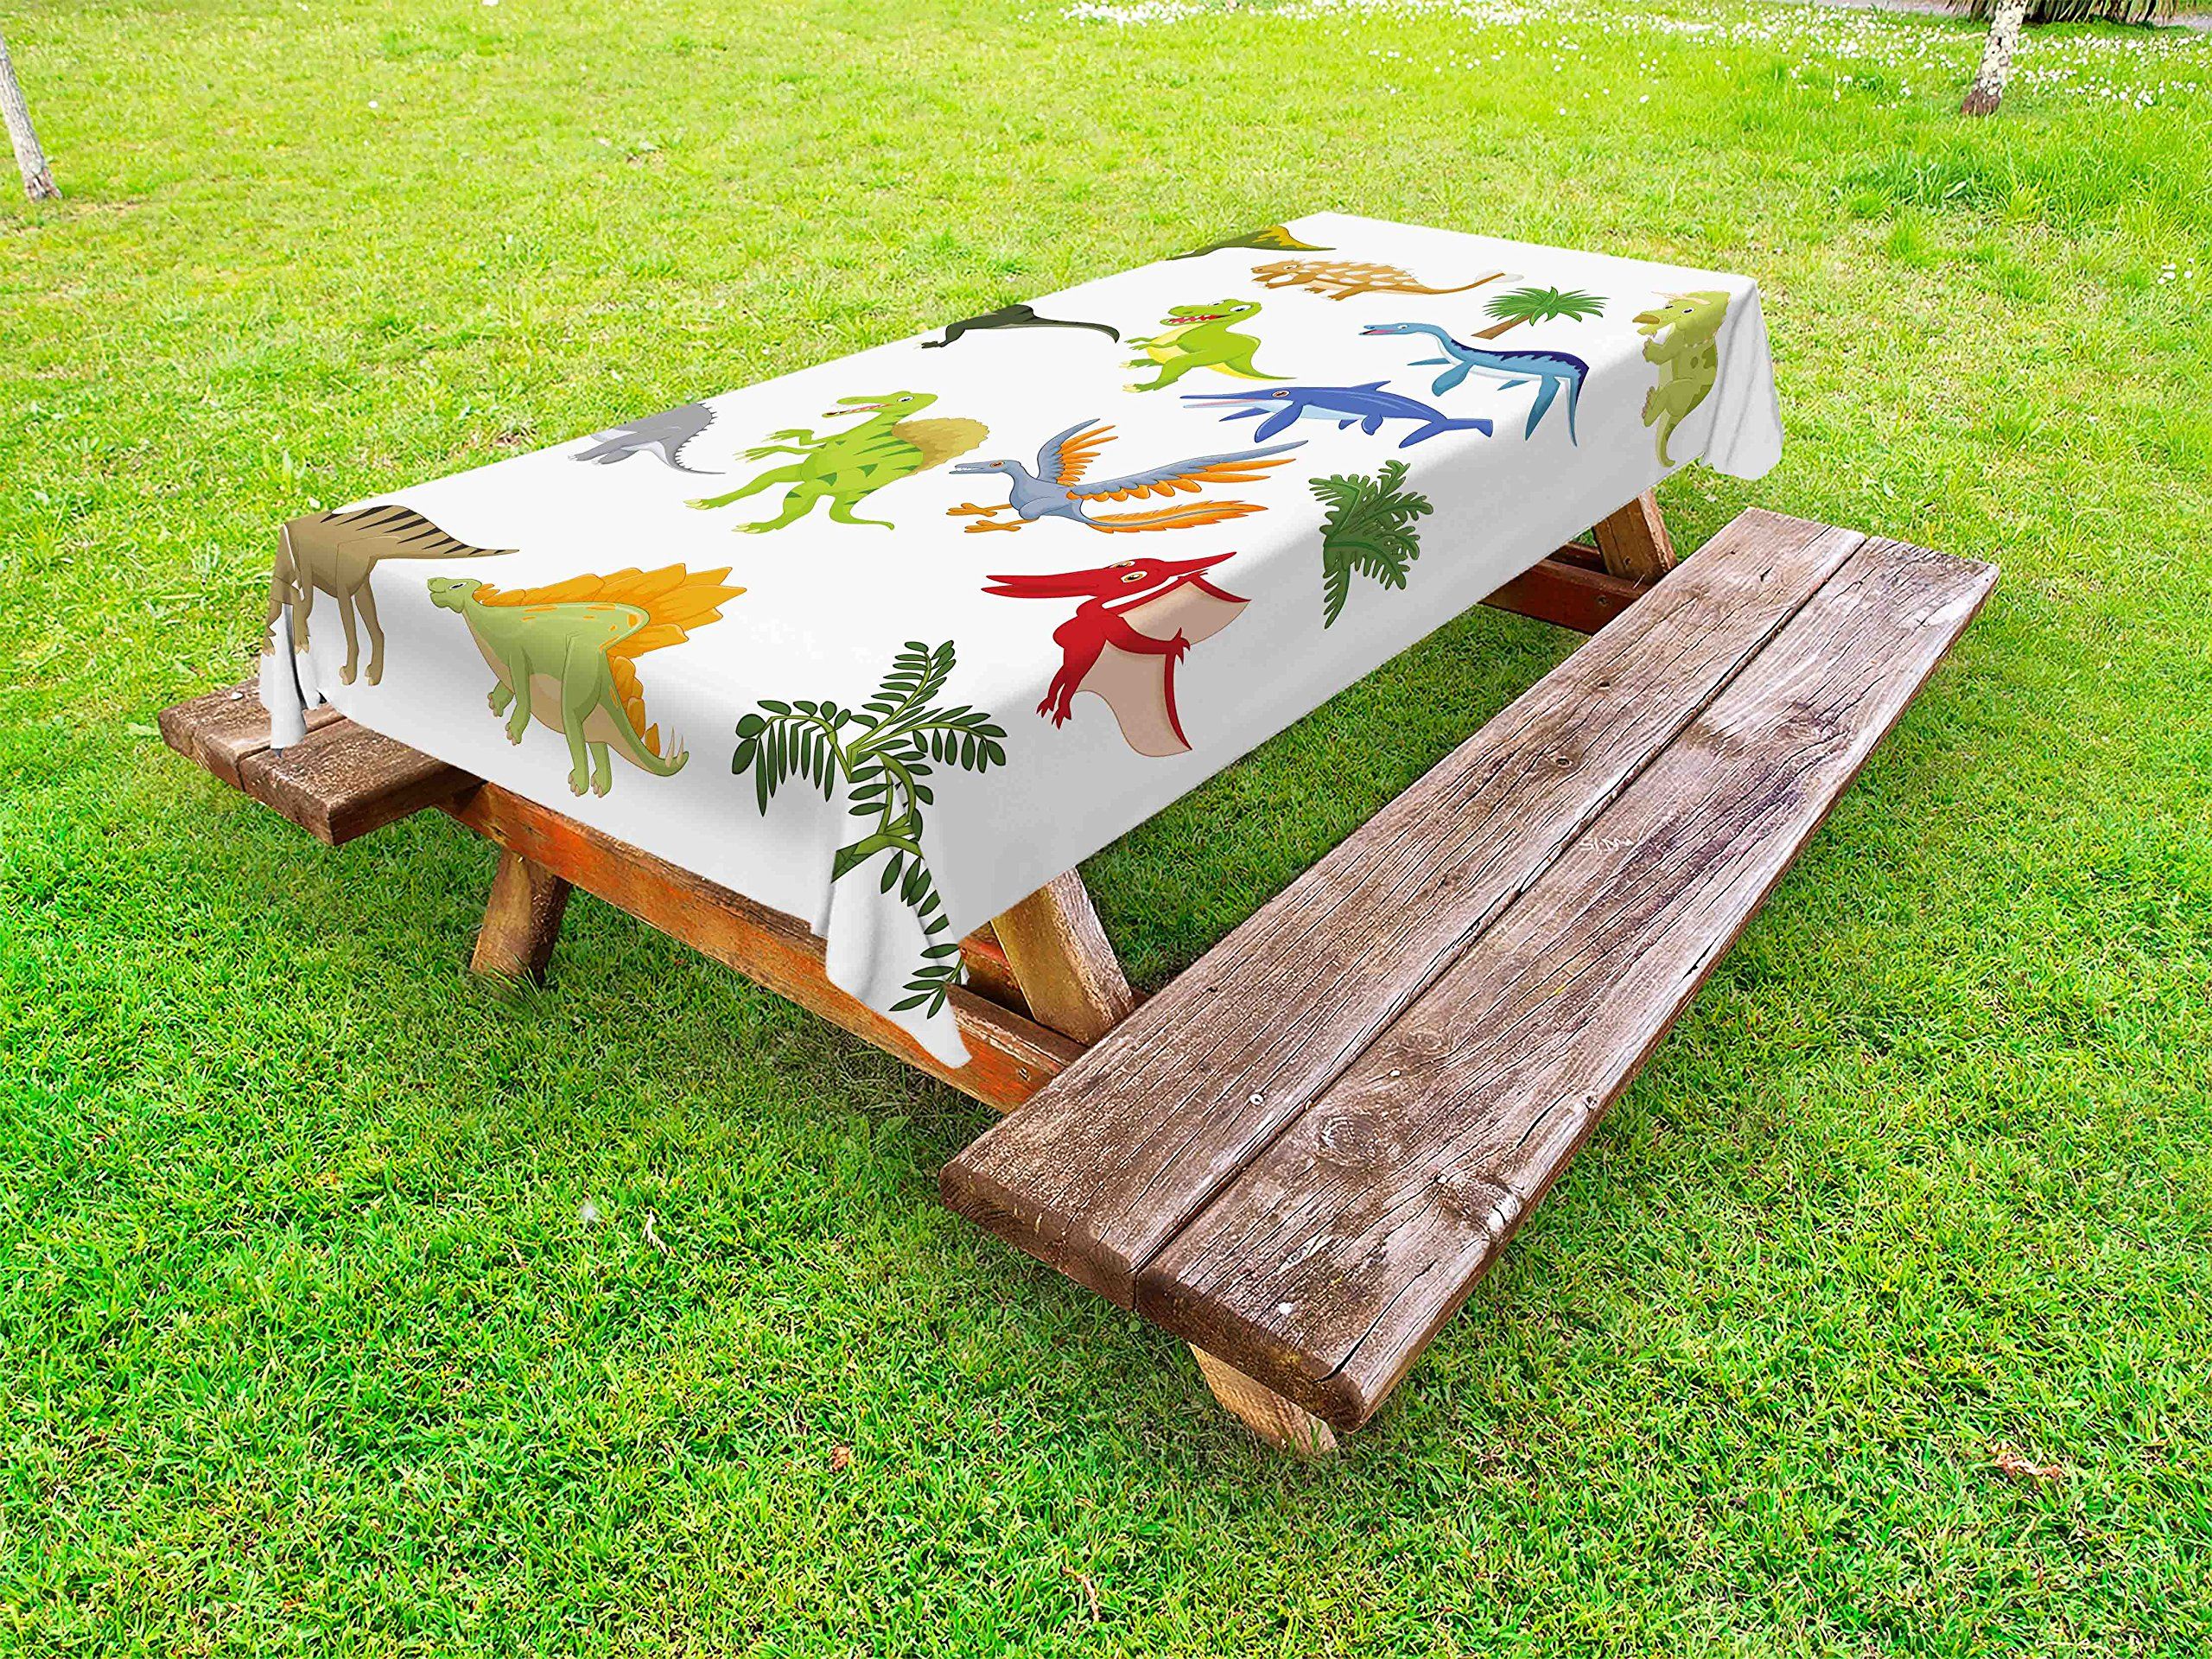 Lunarable Dinosaur Outdoor Tablecloth, Cartoon Dinosaur Images with Other Elements from Jurassic Fauna Cute Creatures, Decorative Washable Picnic Table Cloth, 58 X 120 Inches, Multicolor